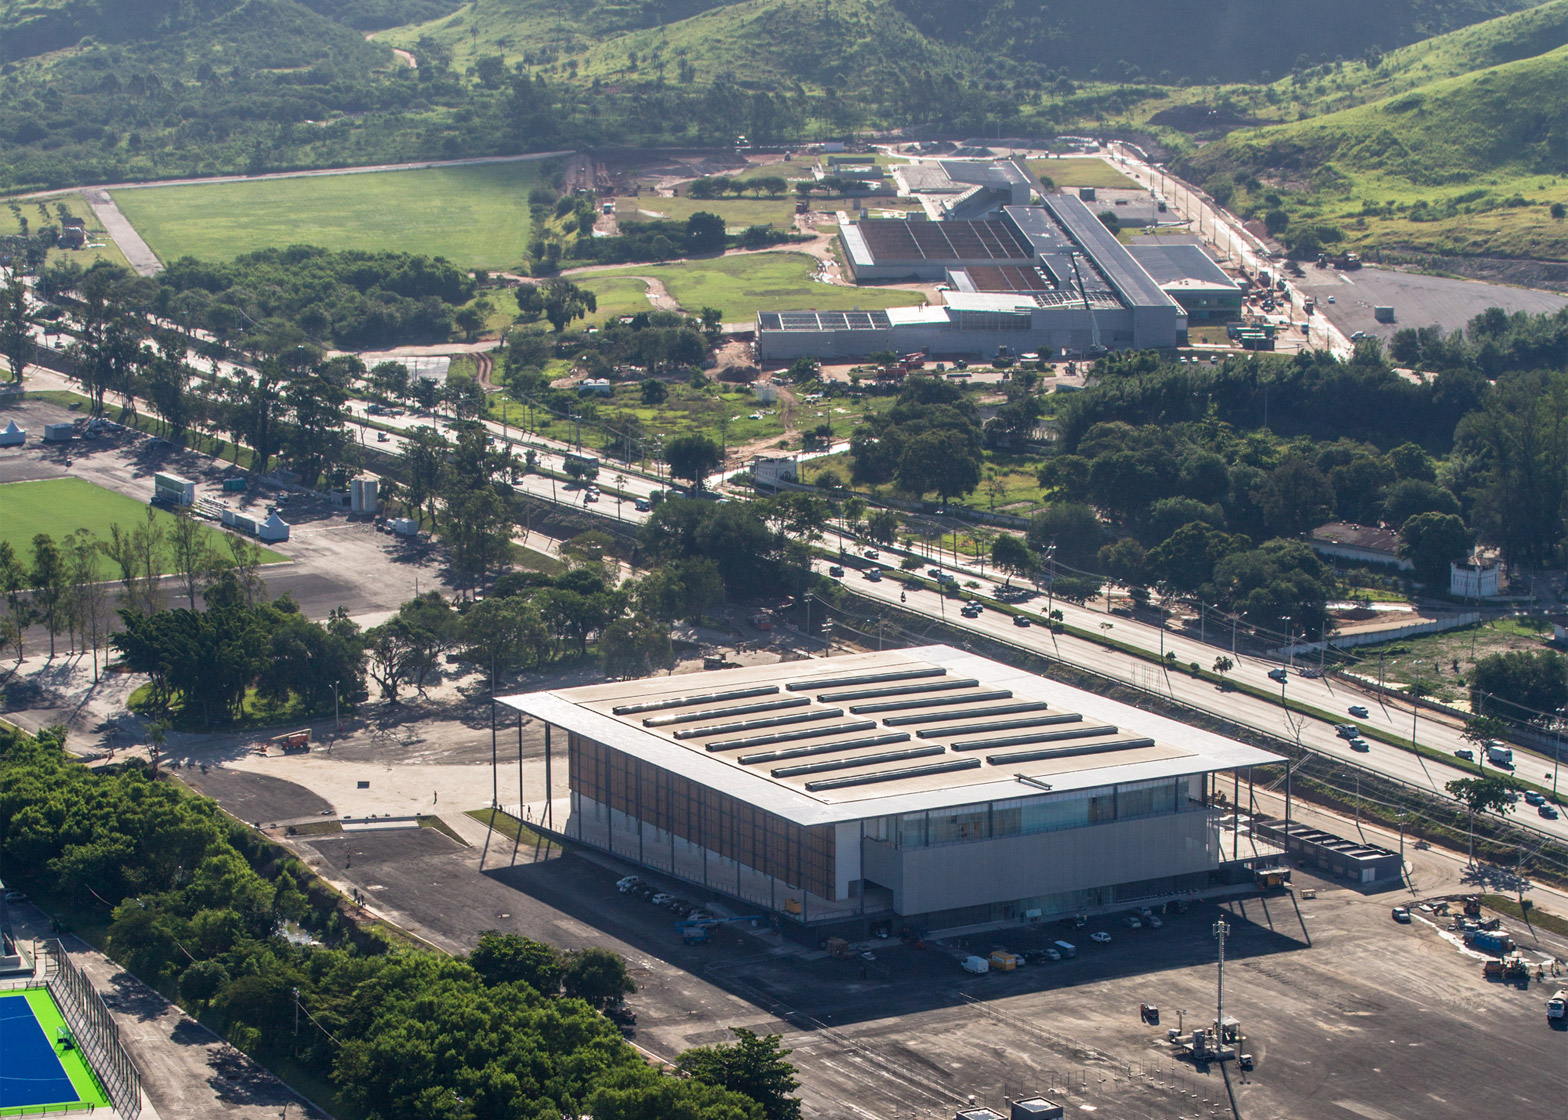 Deodoro Youth Stadium by Vigliecca & Associados